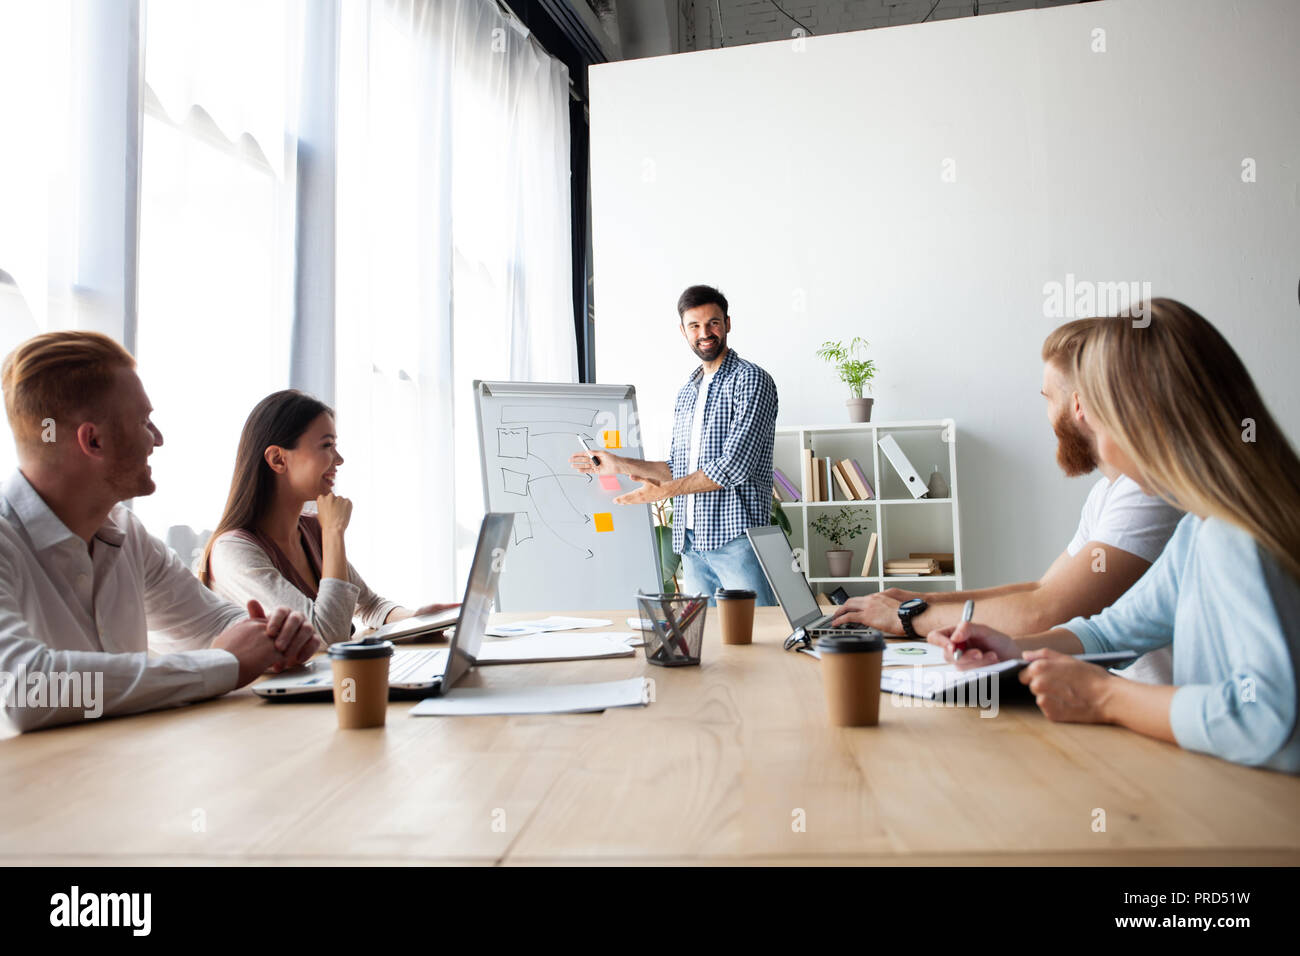 Achieving best results together. Modern young man conducting a business presentation while standing in the board room. - Stock Image